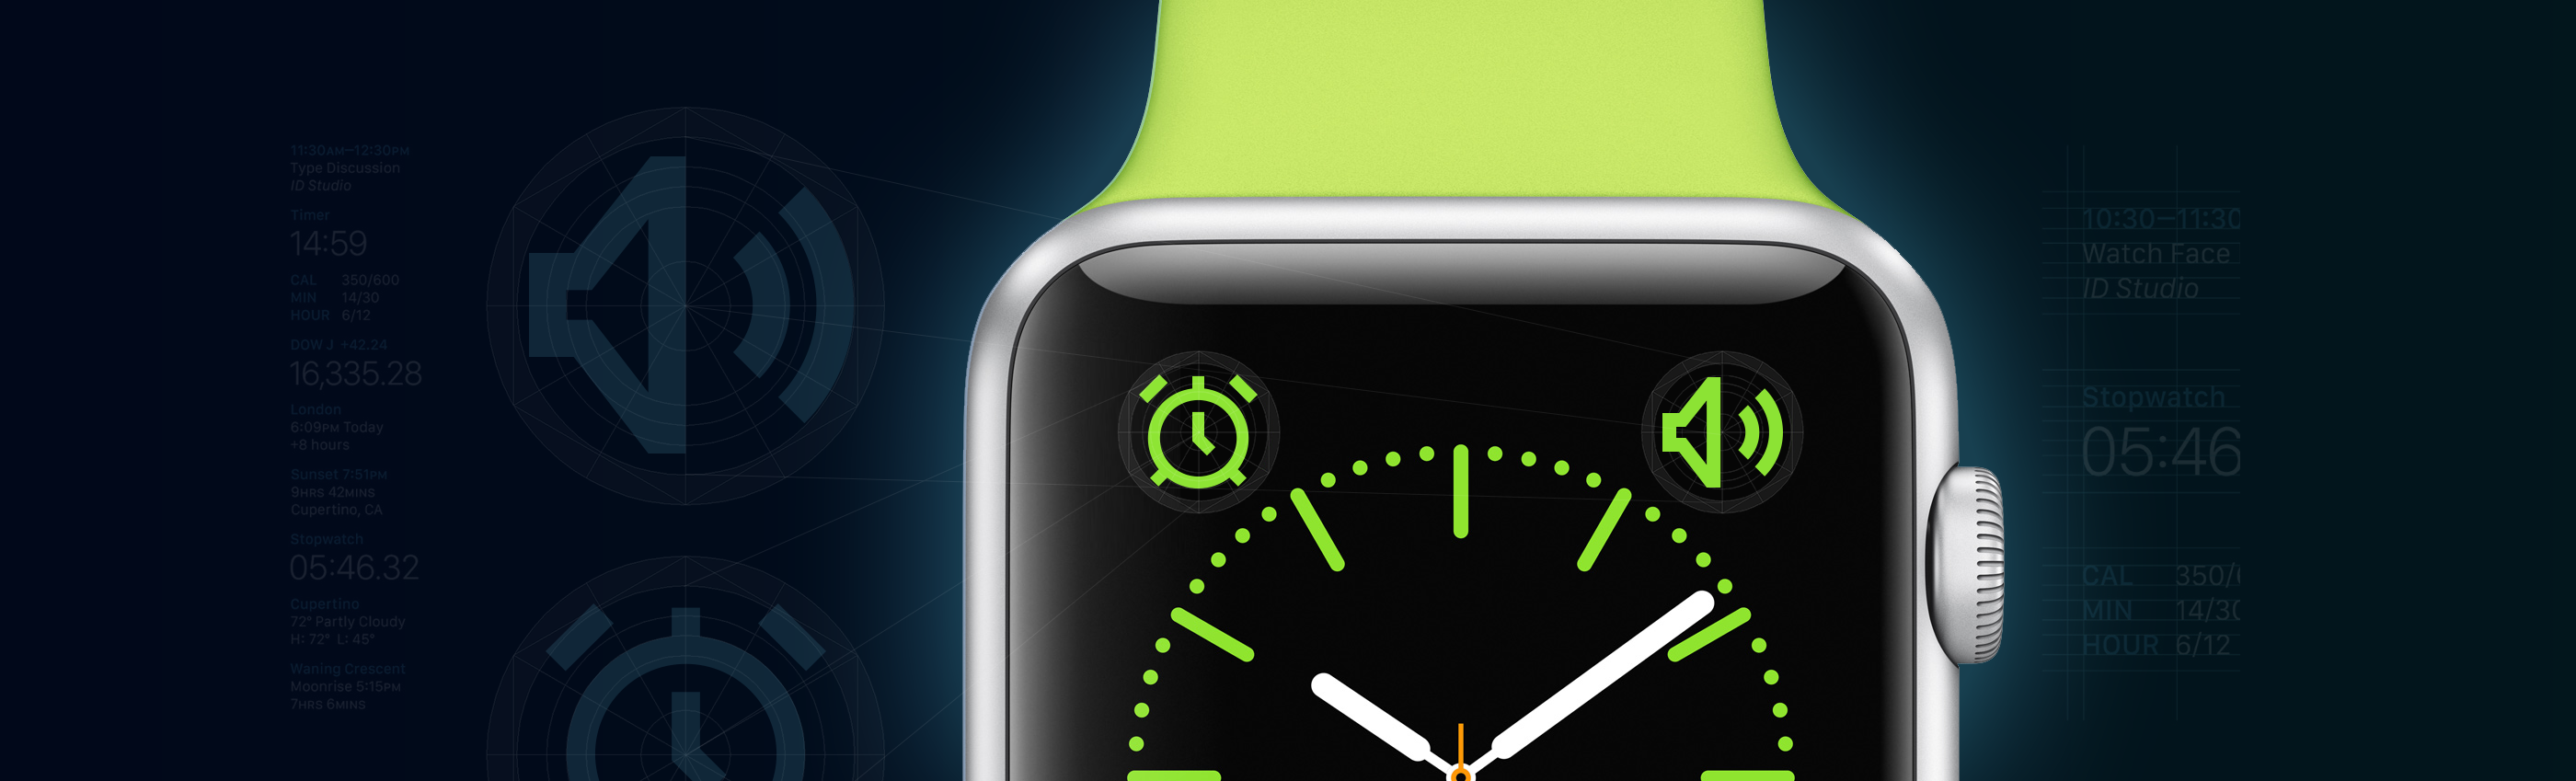 Icons for Apple Watch — The Definitive Guide - The